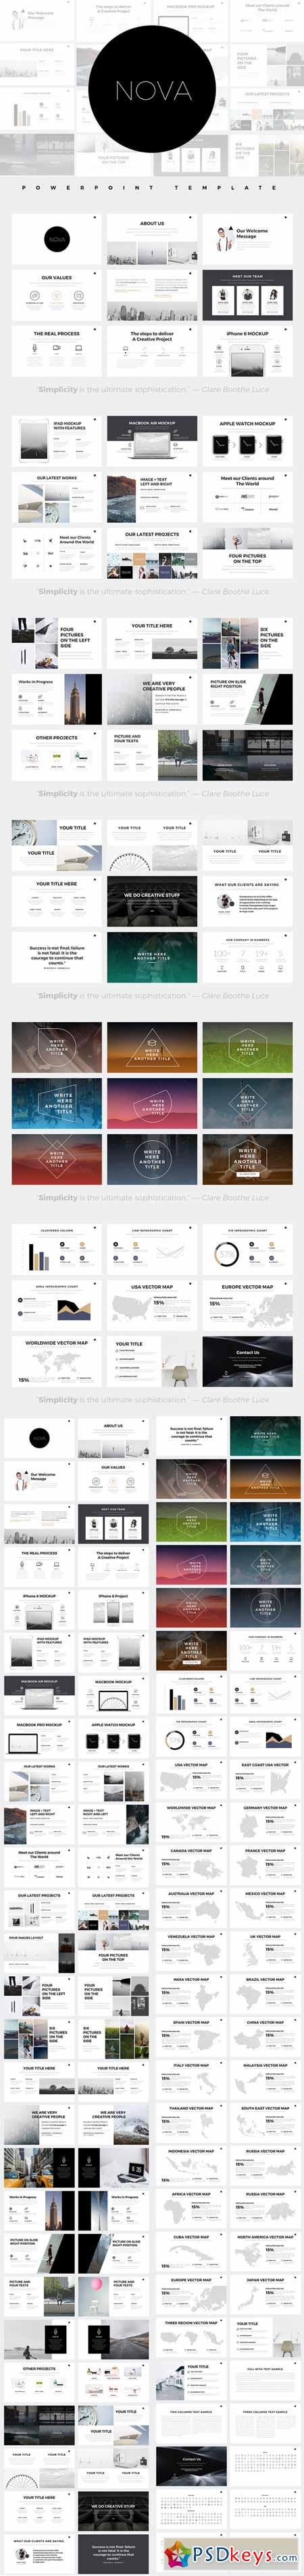 Nova minimal powerpoint template 590639 free download photoshop nova minimal powerpoint template 590639 toneelgroepblik Choice Image